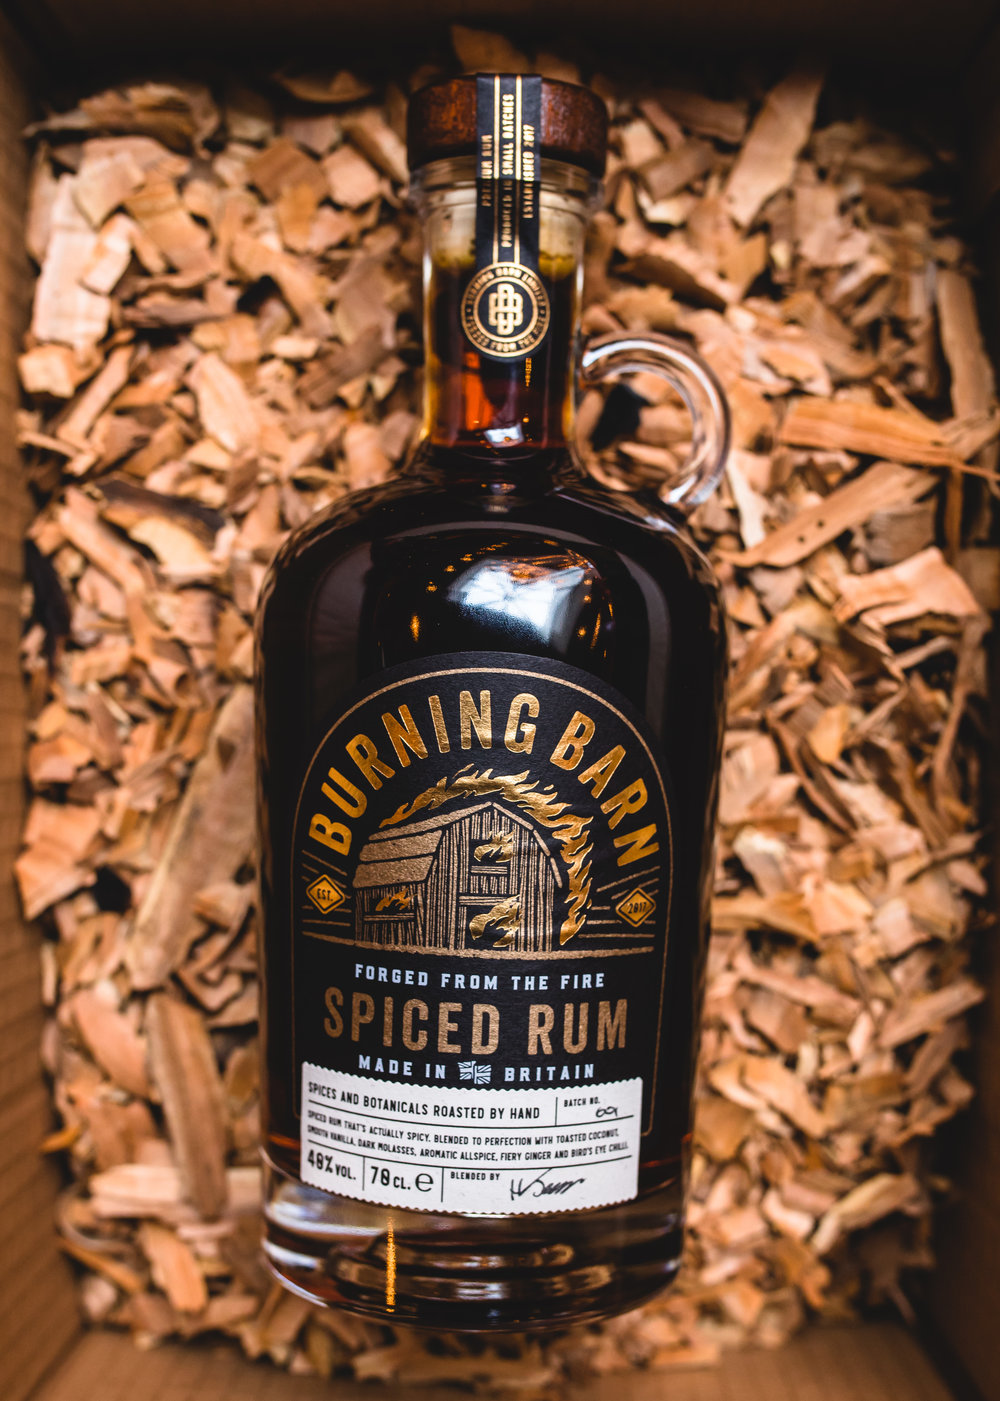 SPICED RUMSpiced Rum for Grown UpsDark rum infused with Vanilla, Allspice, Chilli, Coconut and Ginger hand roasted in copper vessels on siteOnly the finest whole spices, no artificial additives or flavourings -